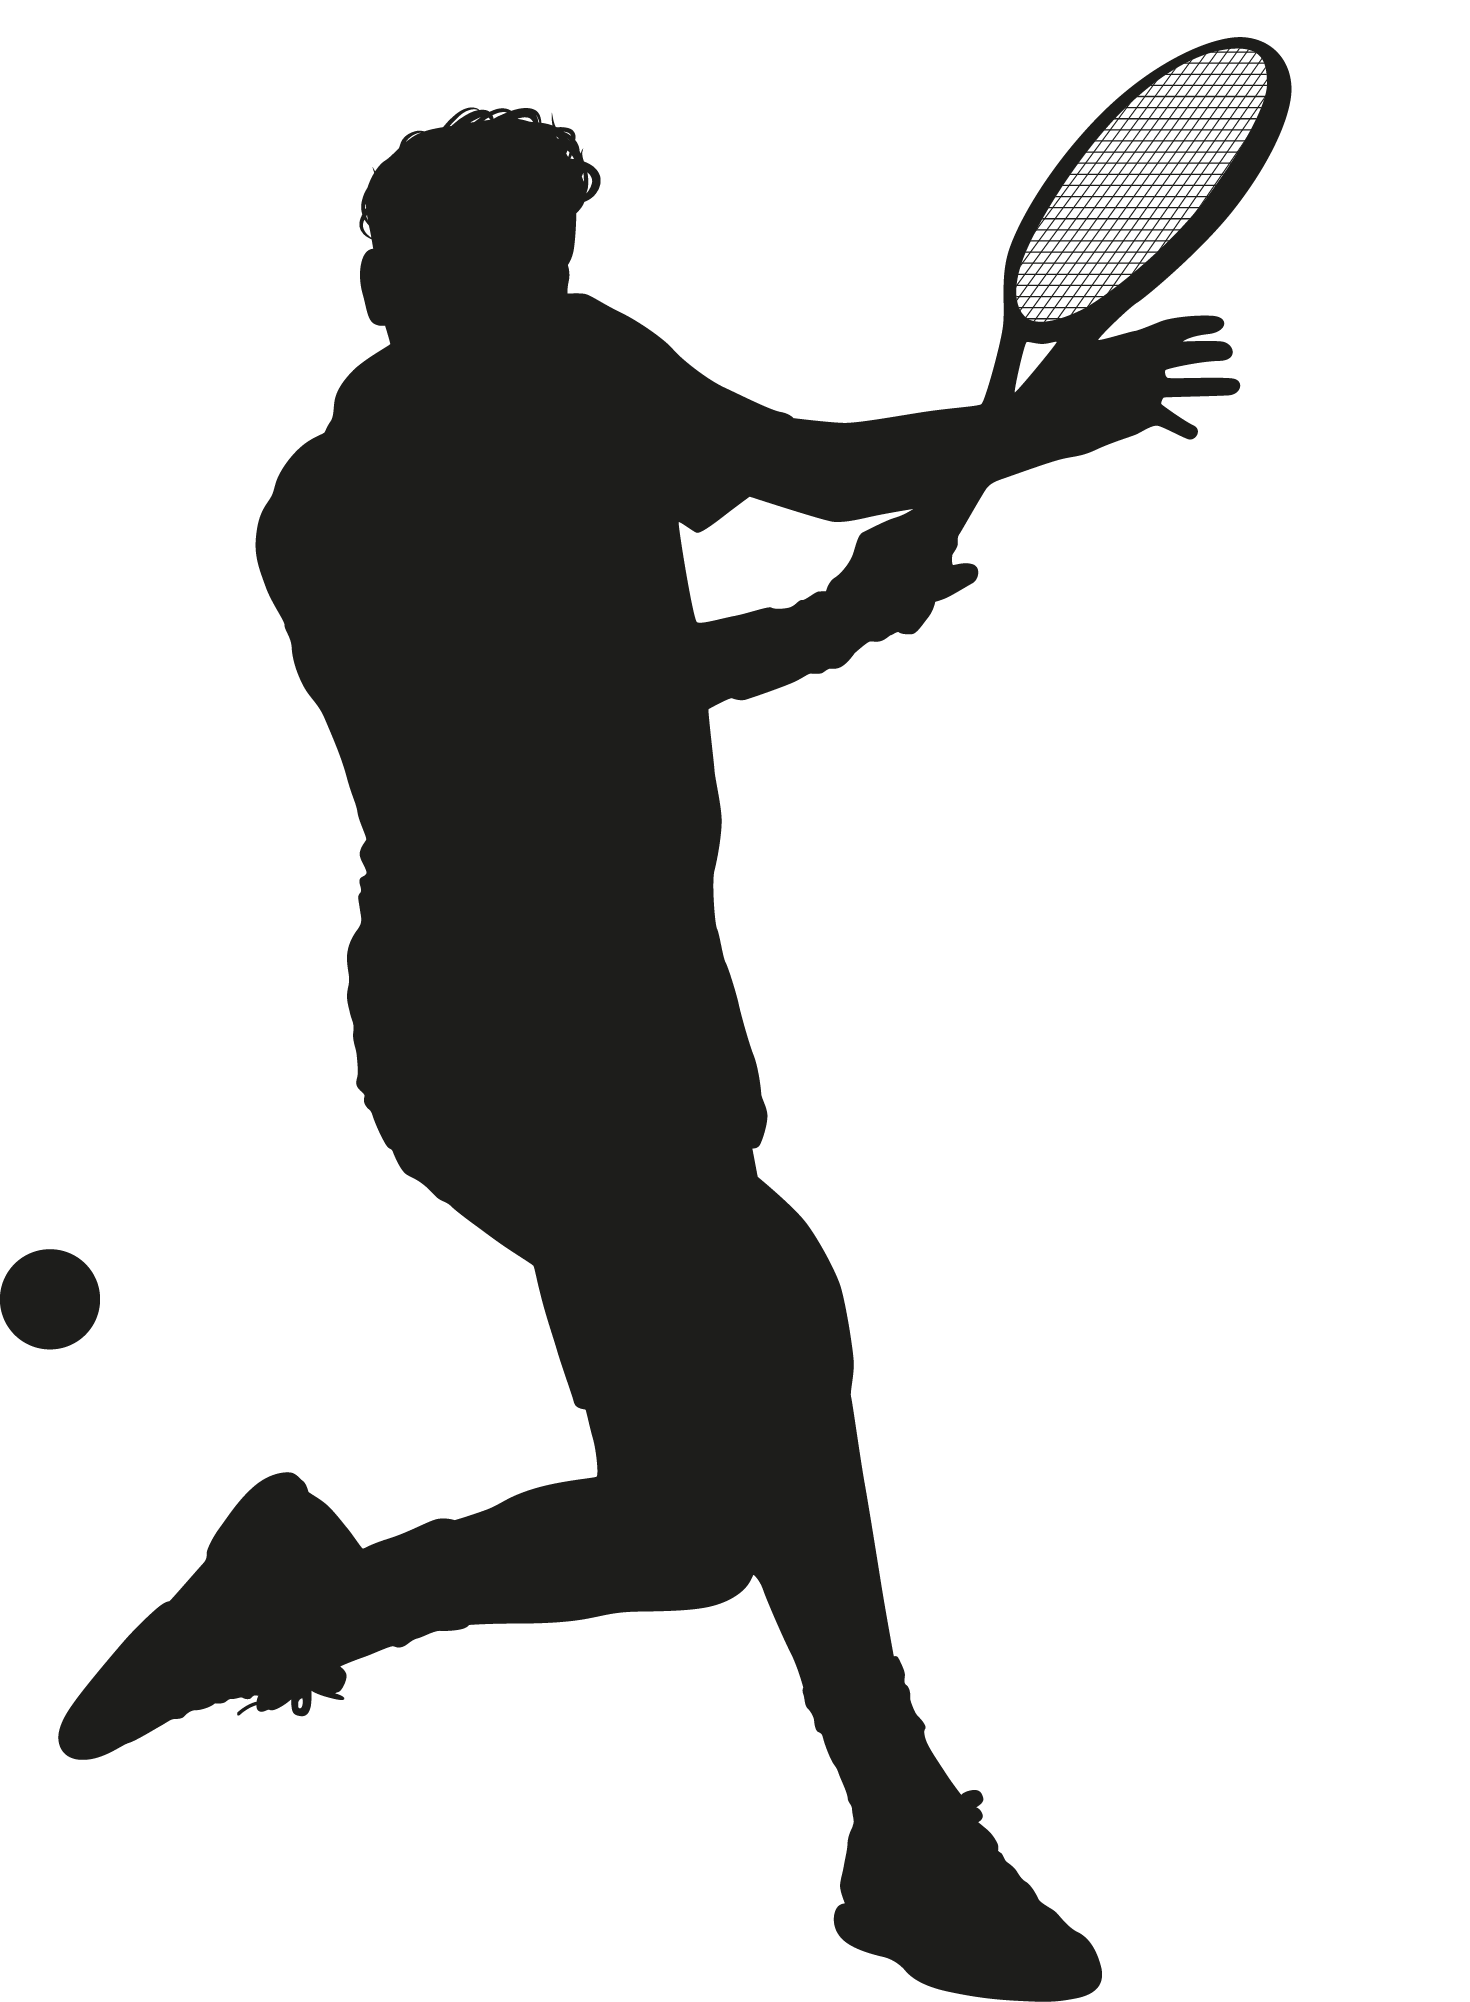 graphic black and white Tennis racket clipart black and white. Squash clip art transprent.